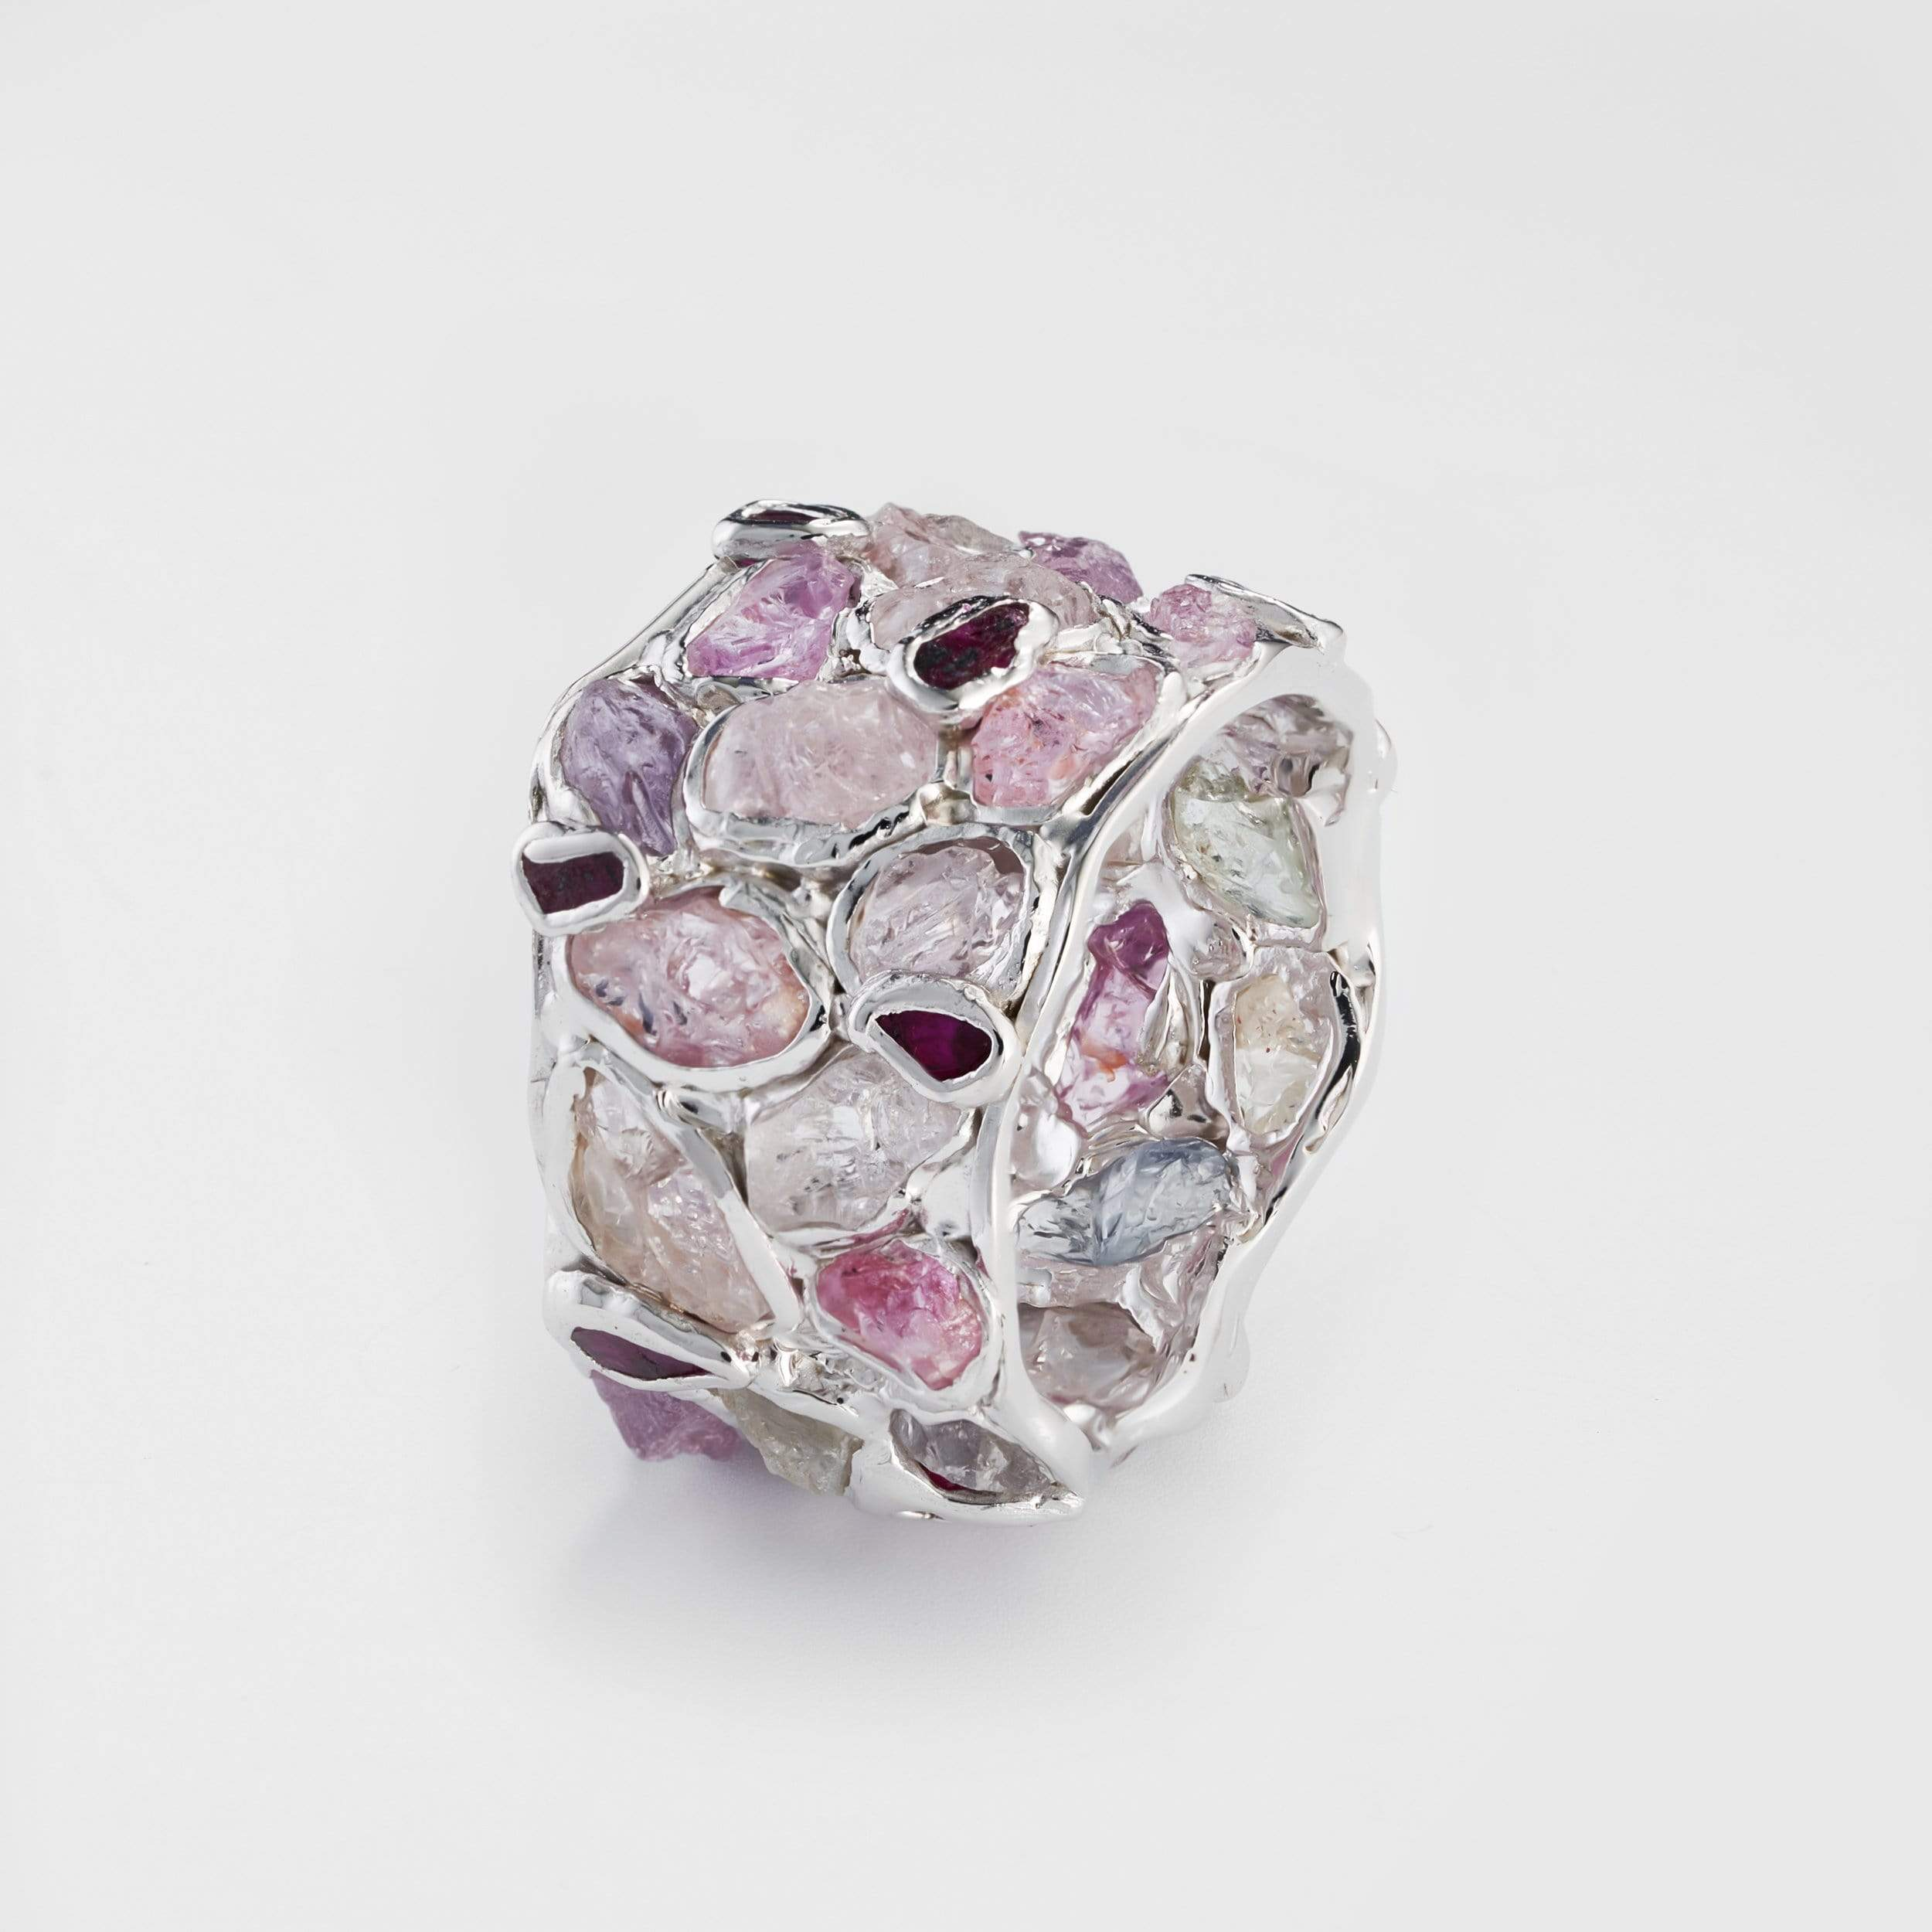 Alcina Ruby Spinel Ring